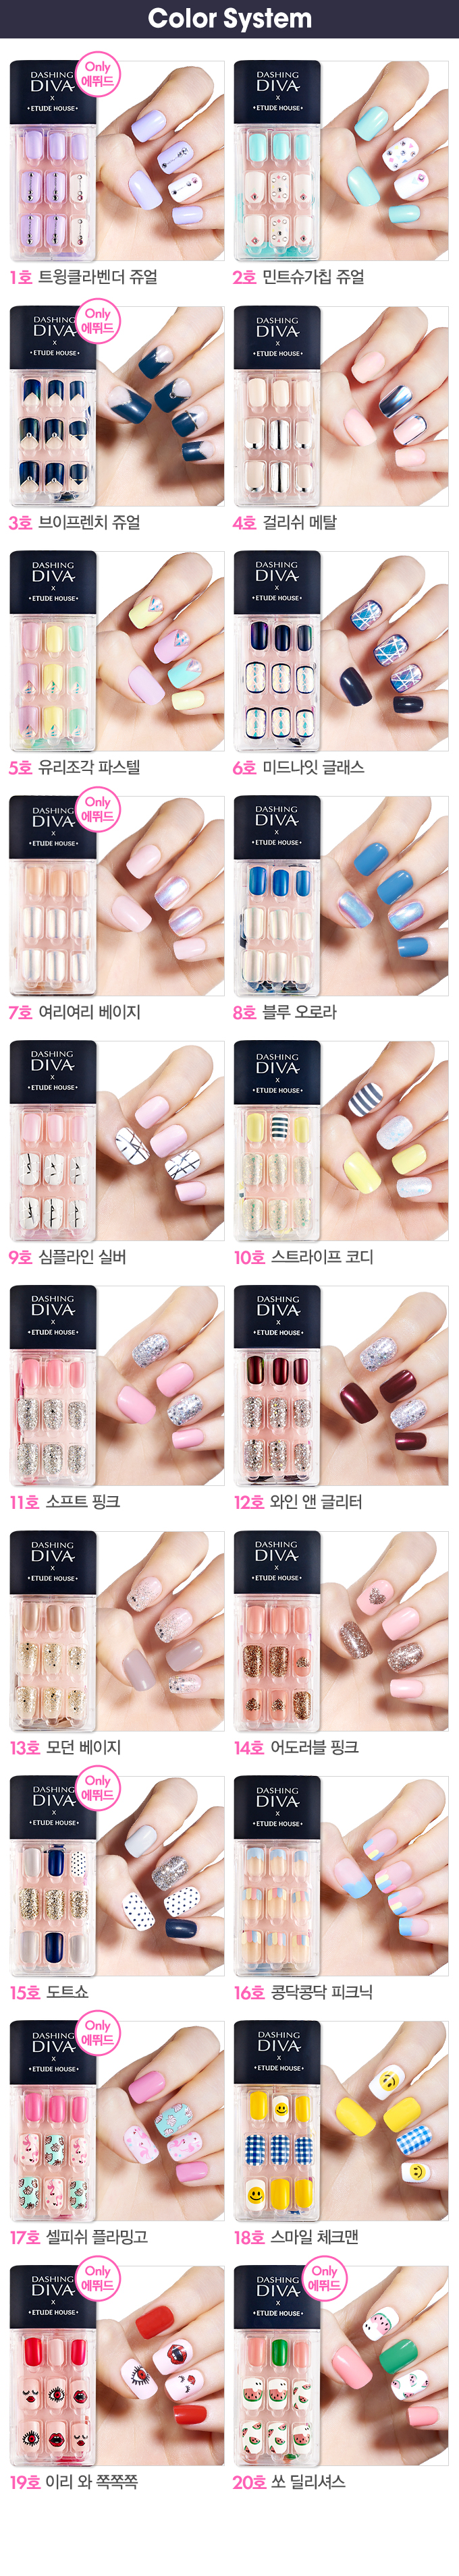 Etude House] Dashing Diva Magic Press, nail tip | eBay